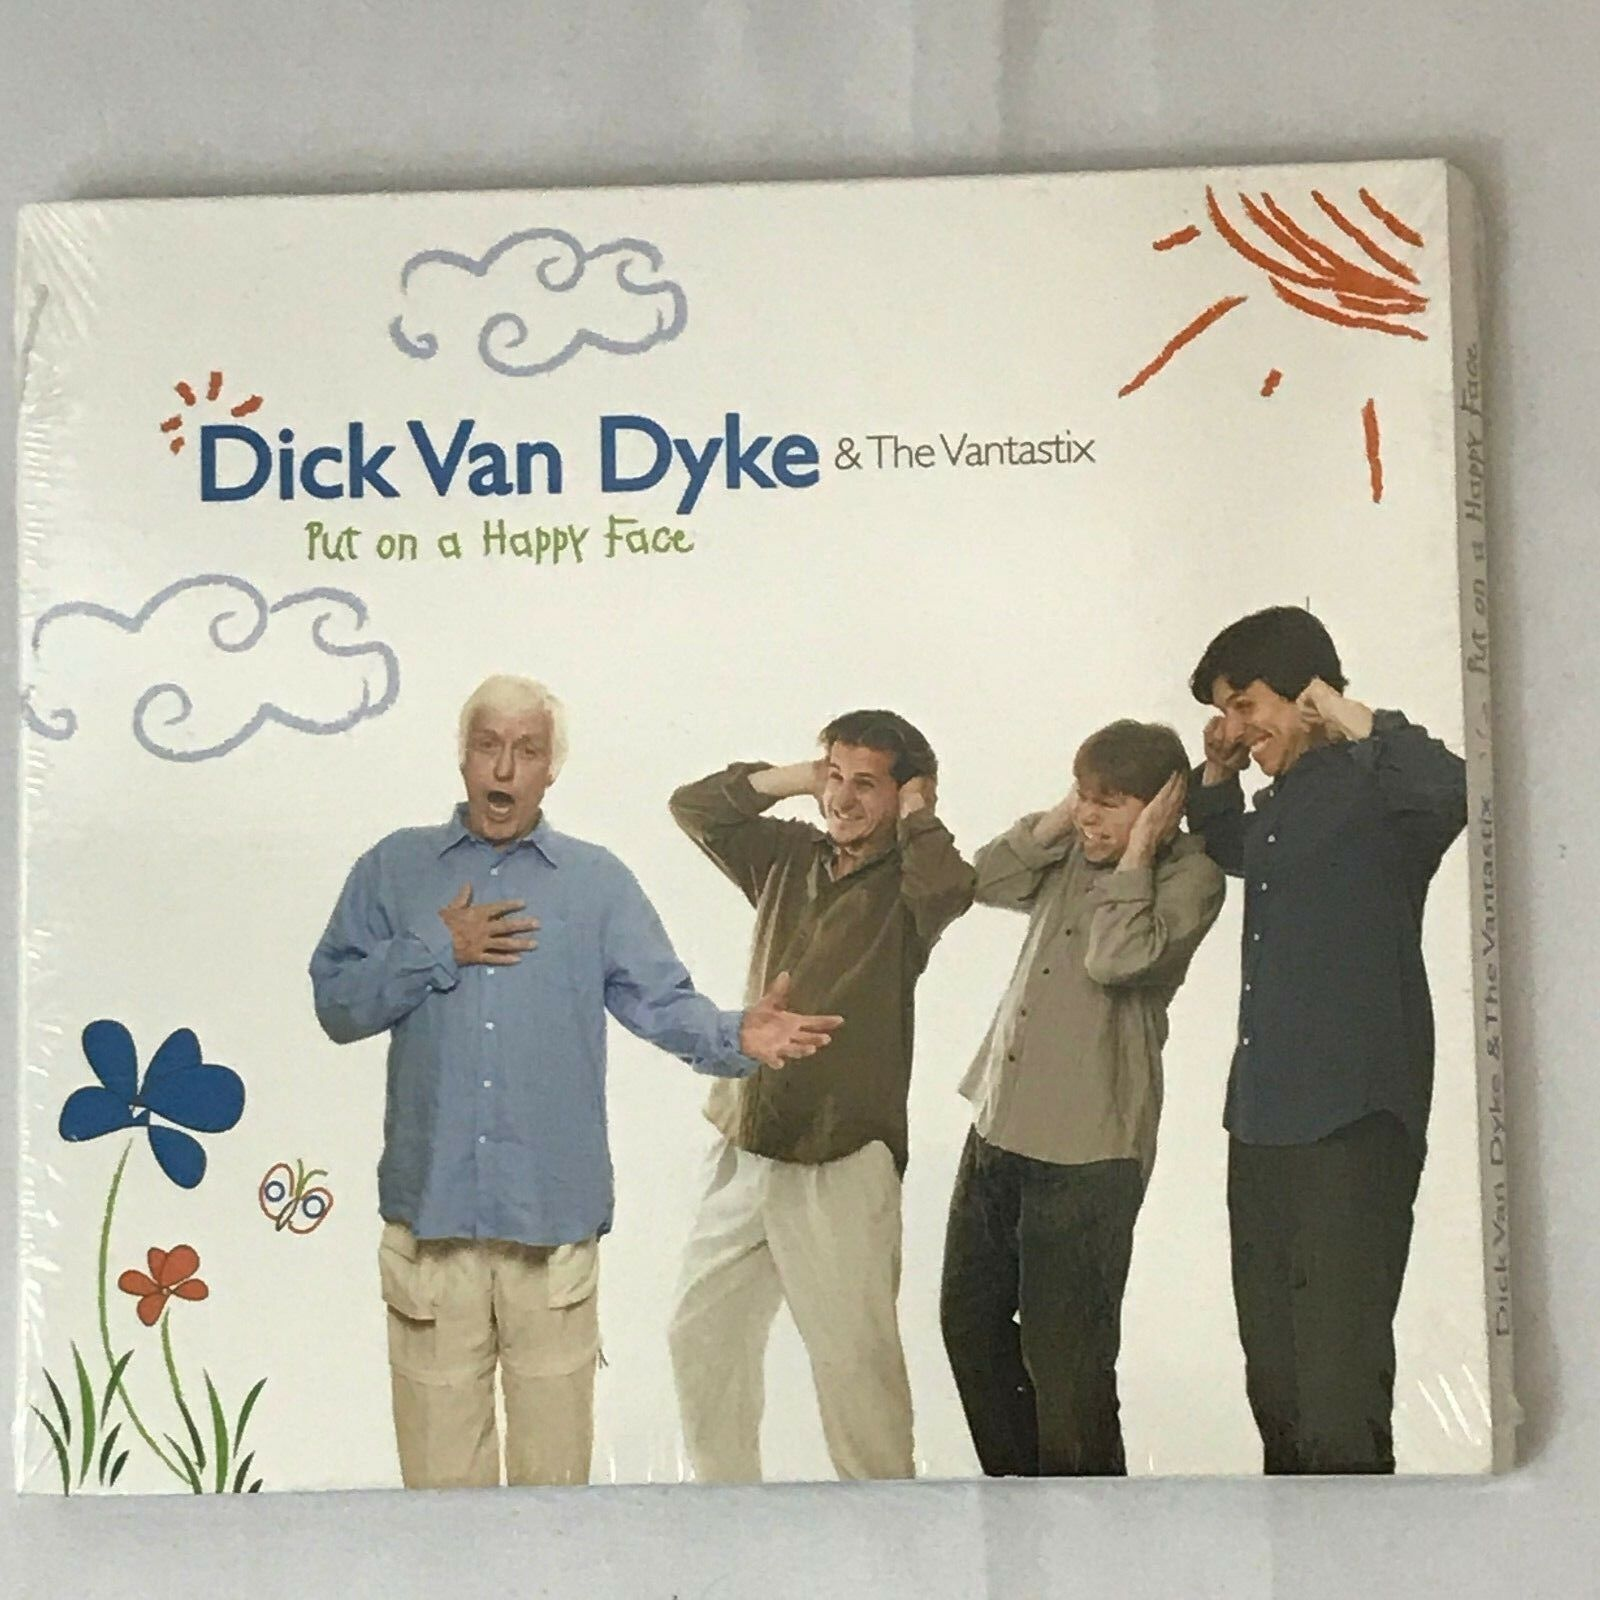 Useful brand that sponsored dick van dyke